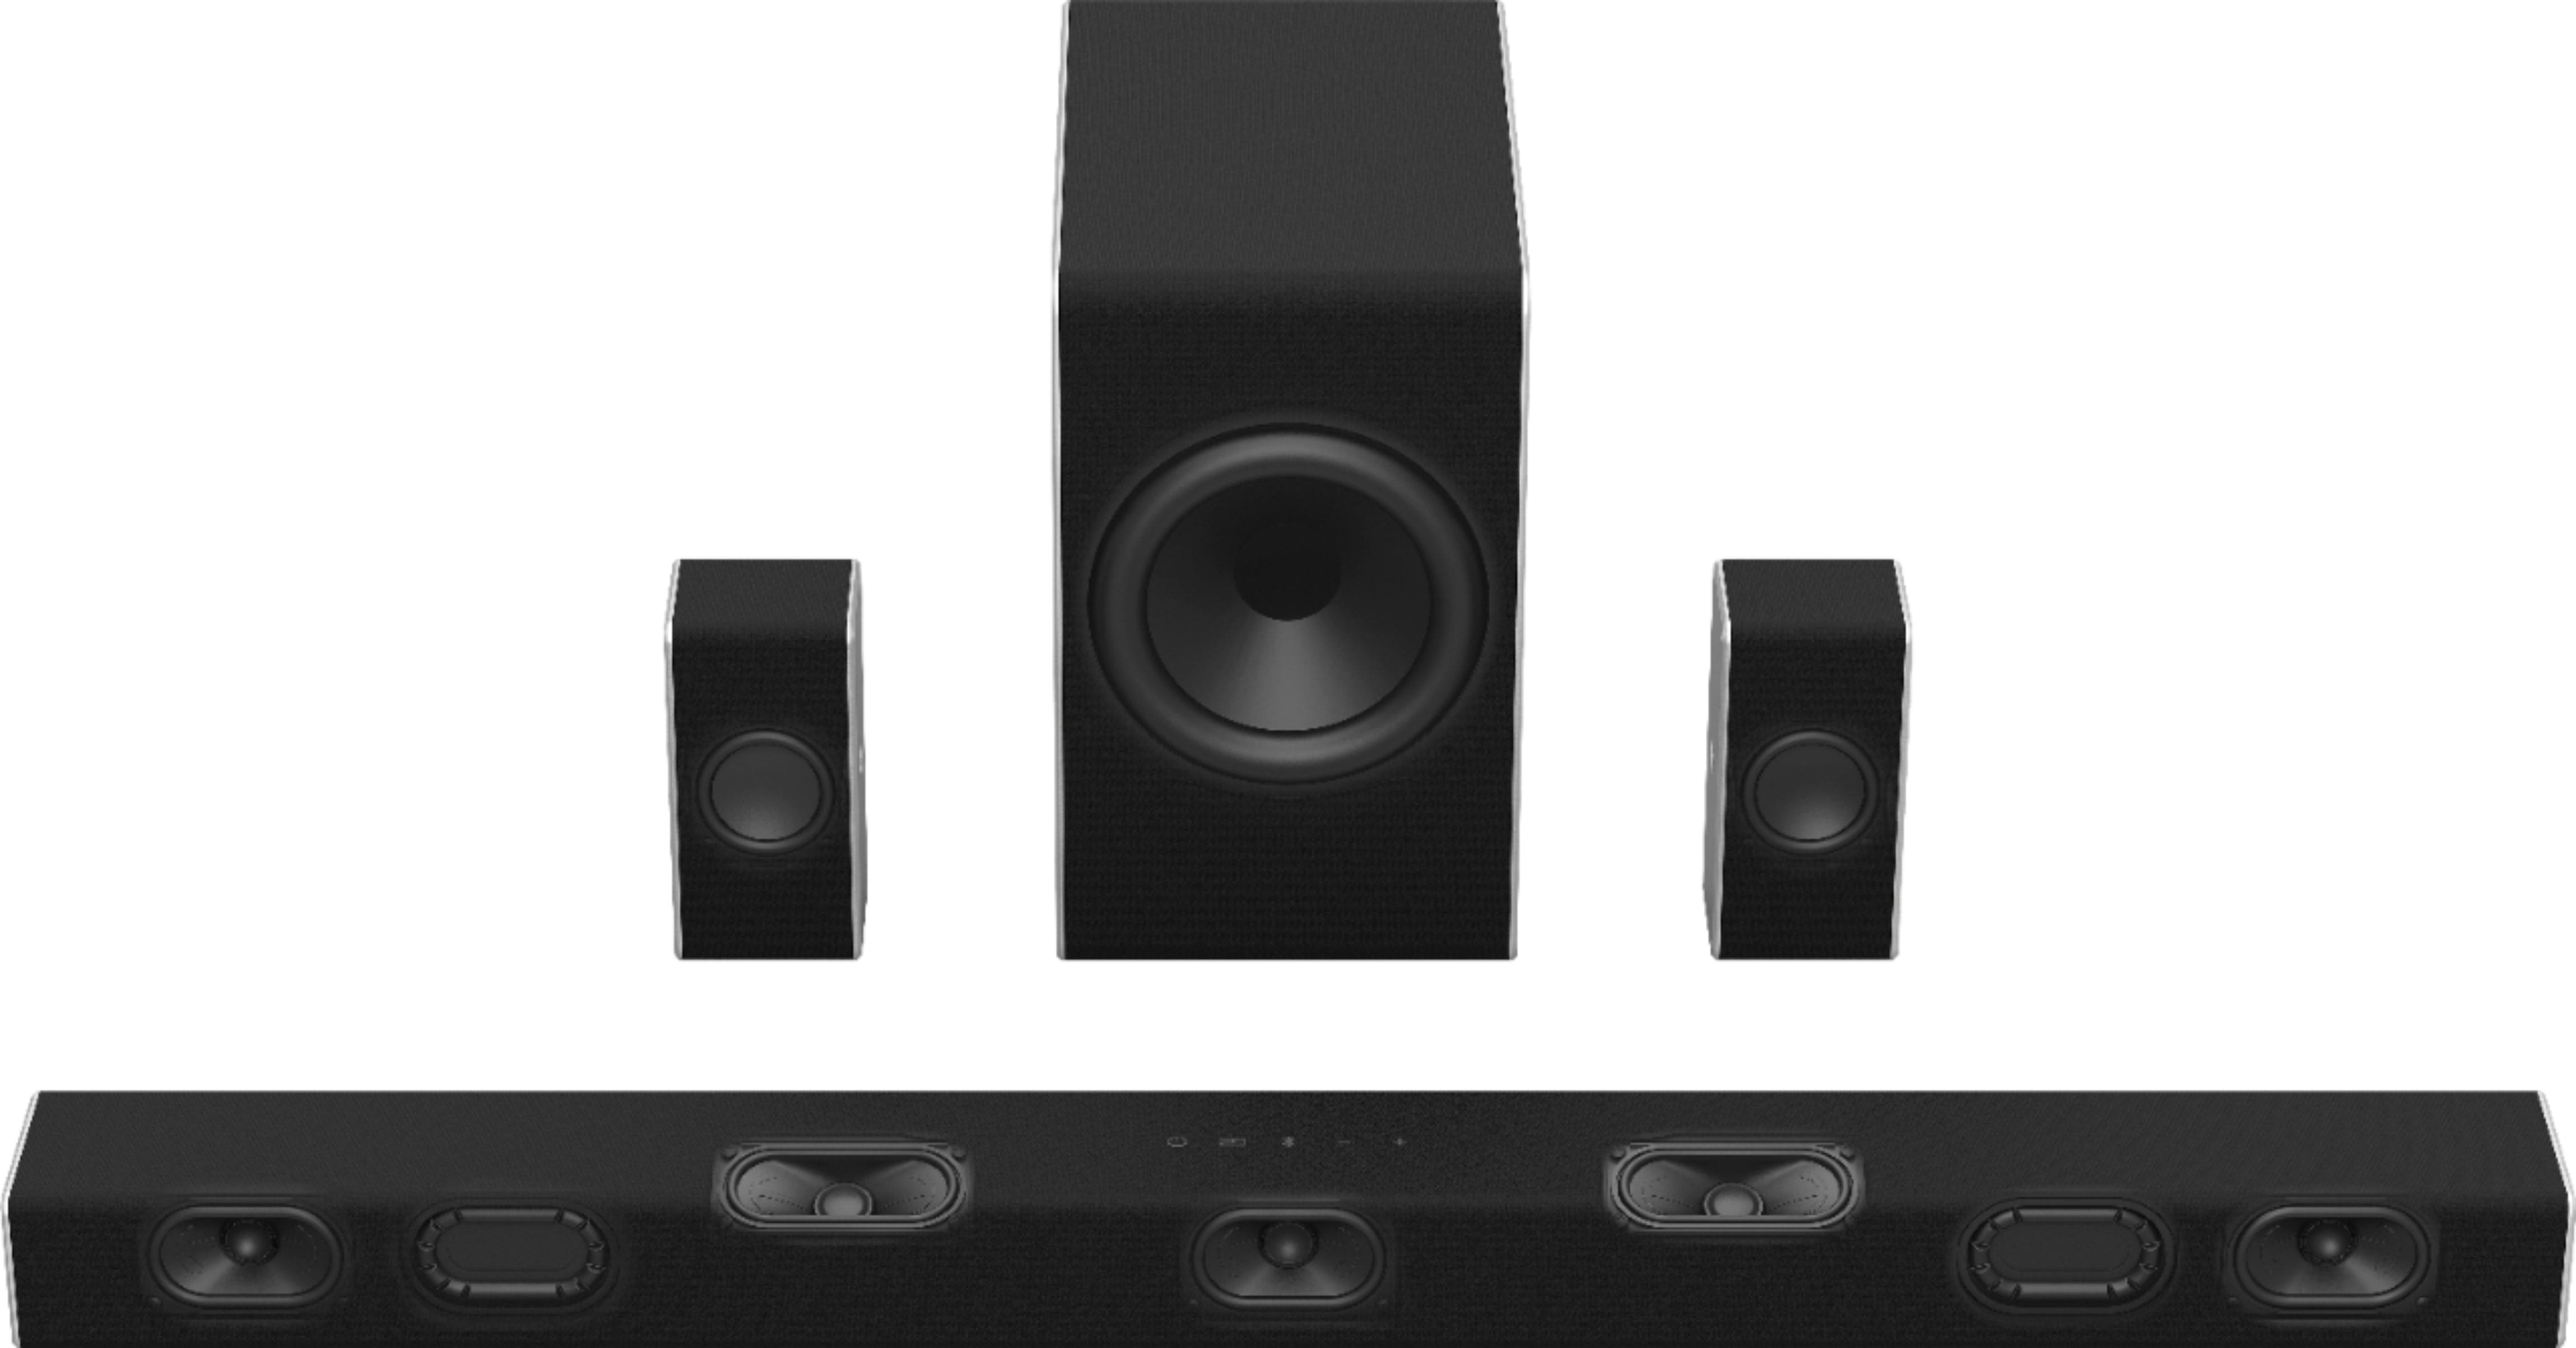 VIZIO - 5.1.2-Channel Soundbar System with Wireless Subwoofer and Dolby Atmos - $329.99